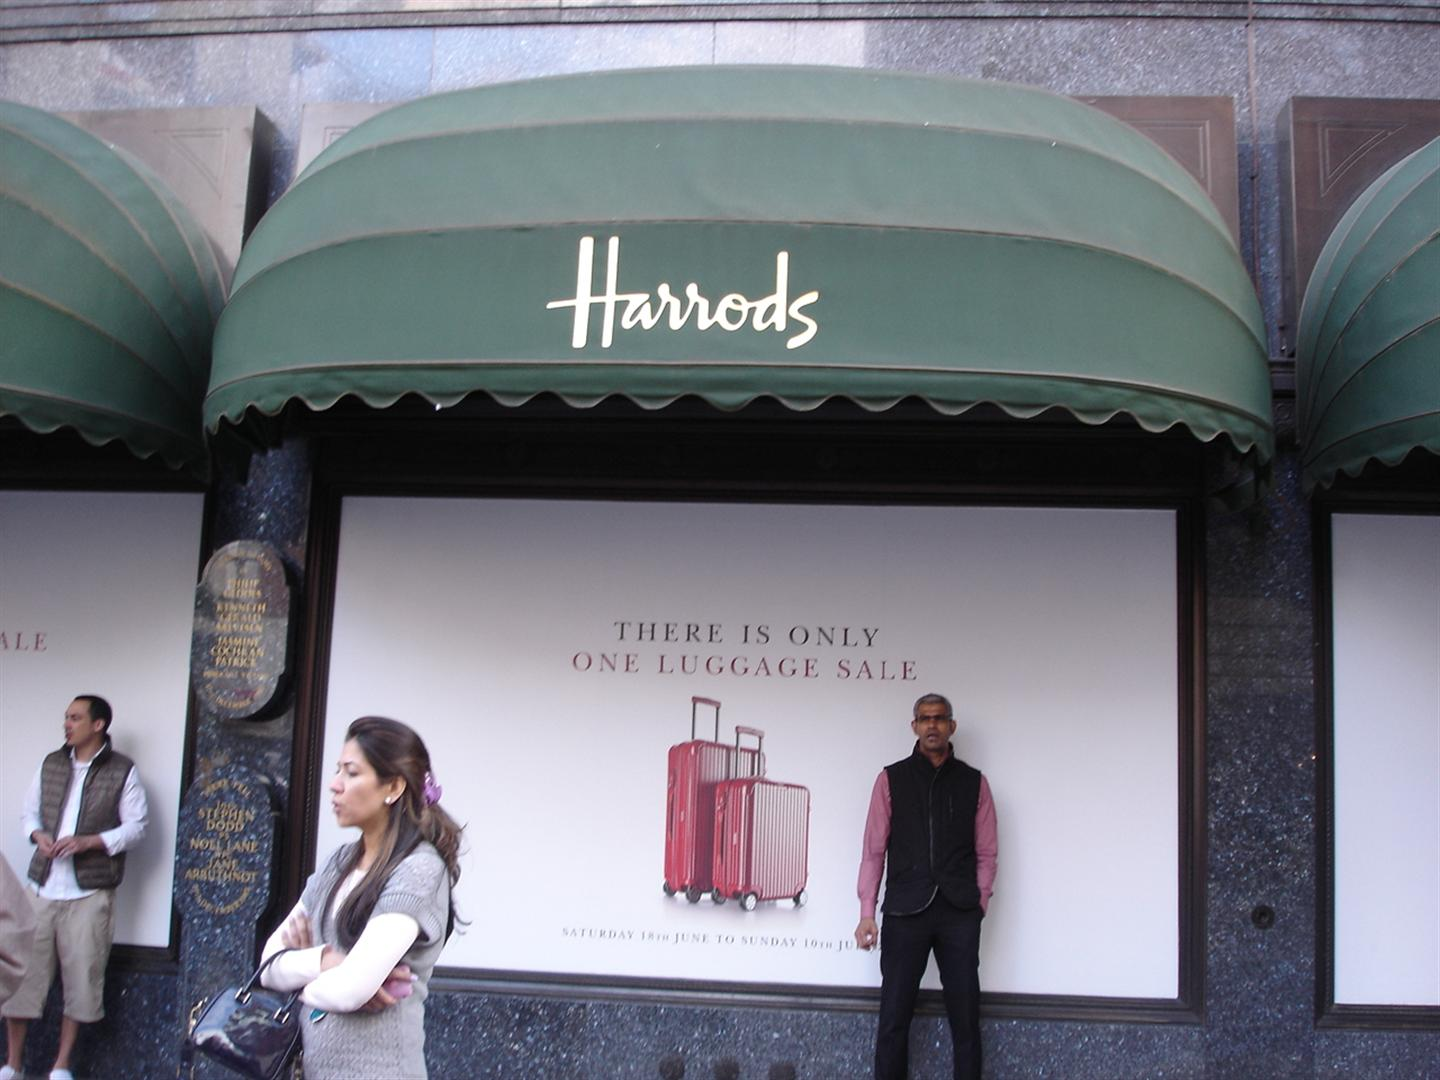 Day 6 Pic 5 - THE Harrods